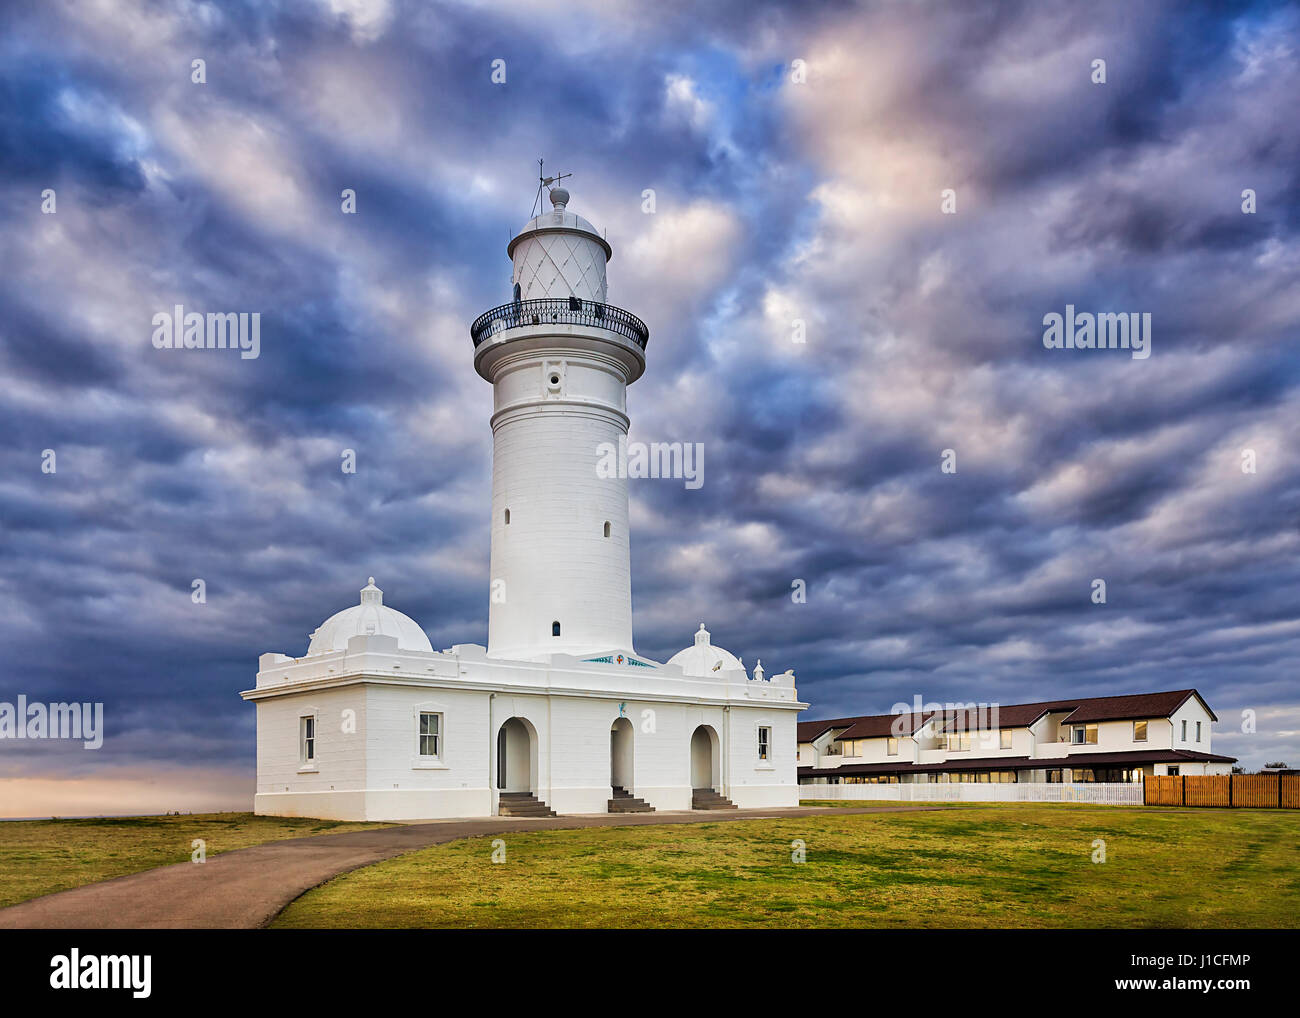 WHite historic MacQuarie lighthouse on Sydney's South head Watsons bay suburb on a cloudy morning. - Stock Image